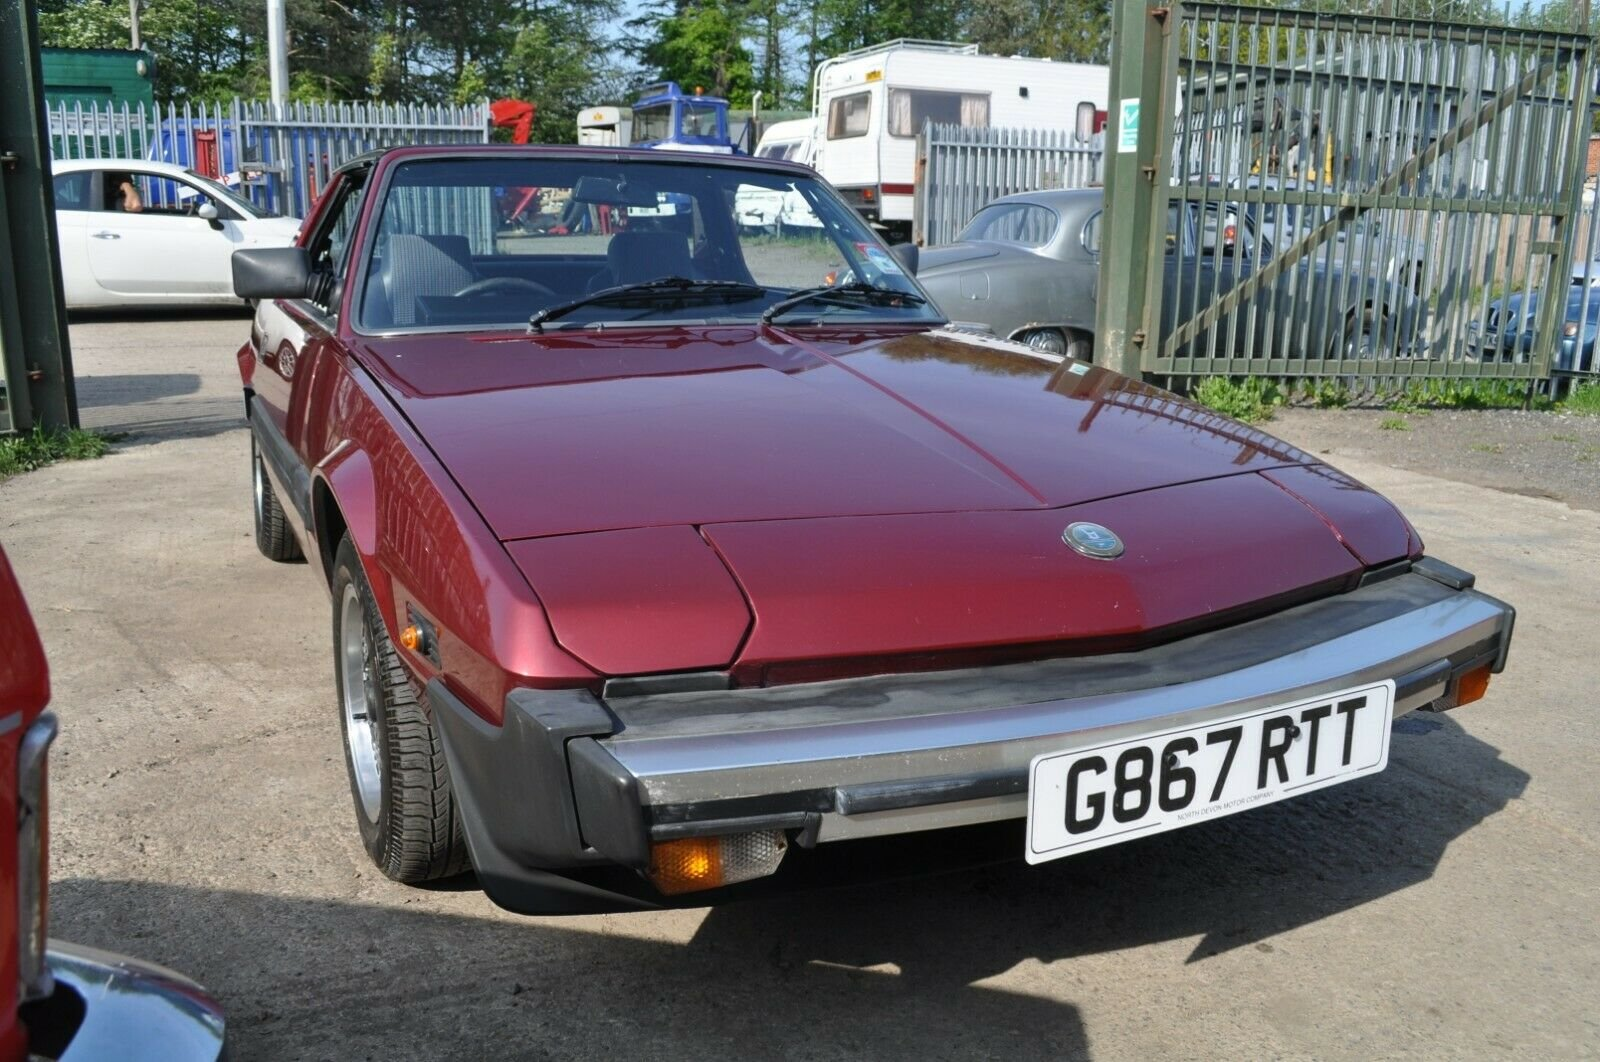 1989 FIAT X/19 GRAND FINALE LIMITED EDITION GOOD CONDITION For Sale (picture 1 of 6)